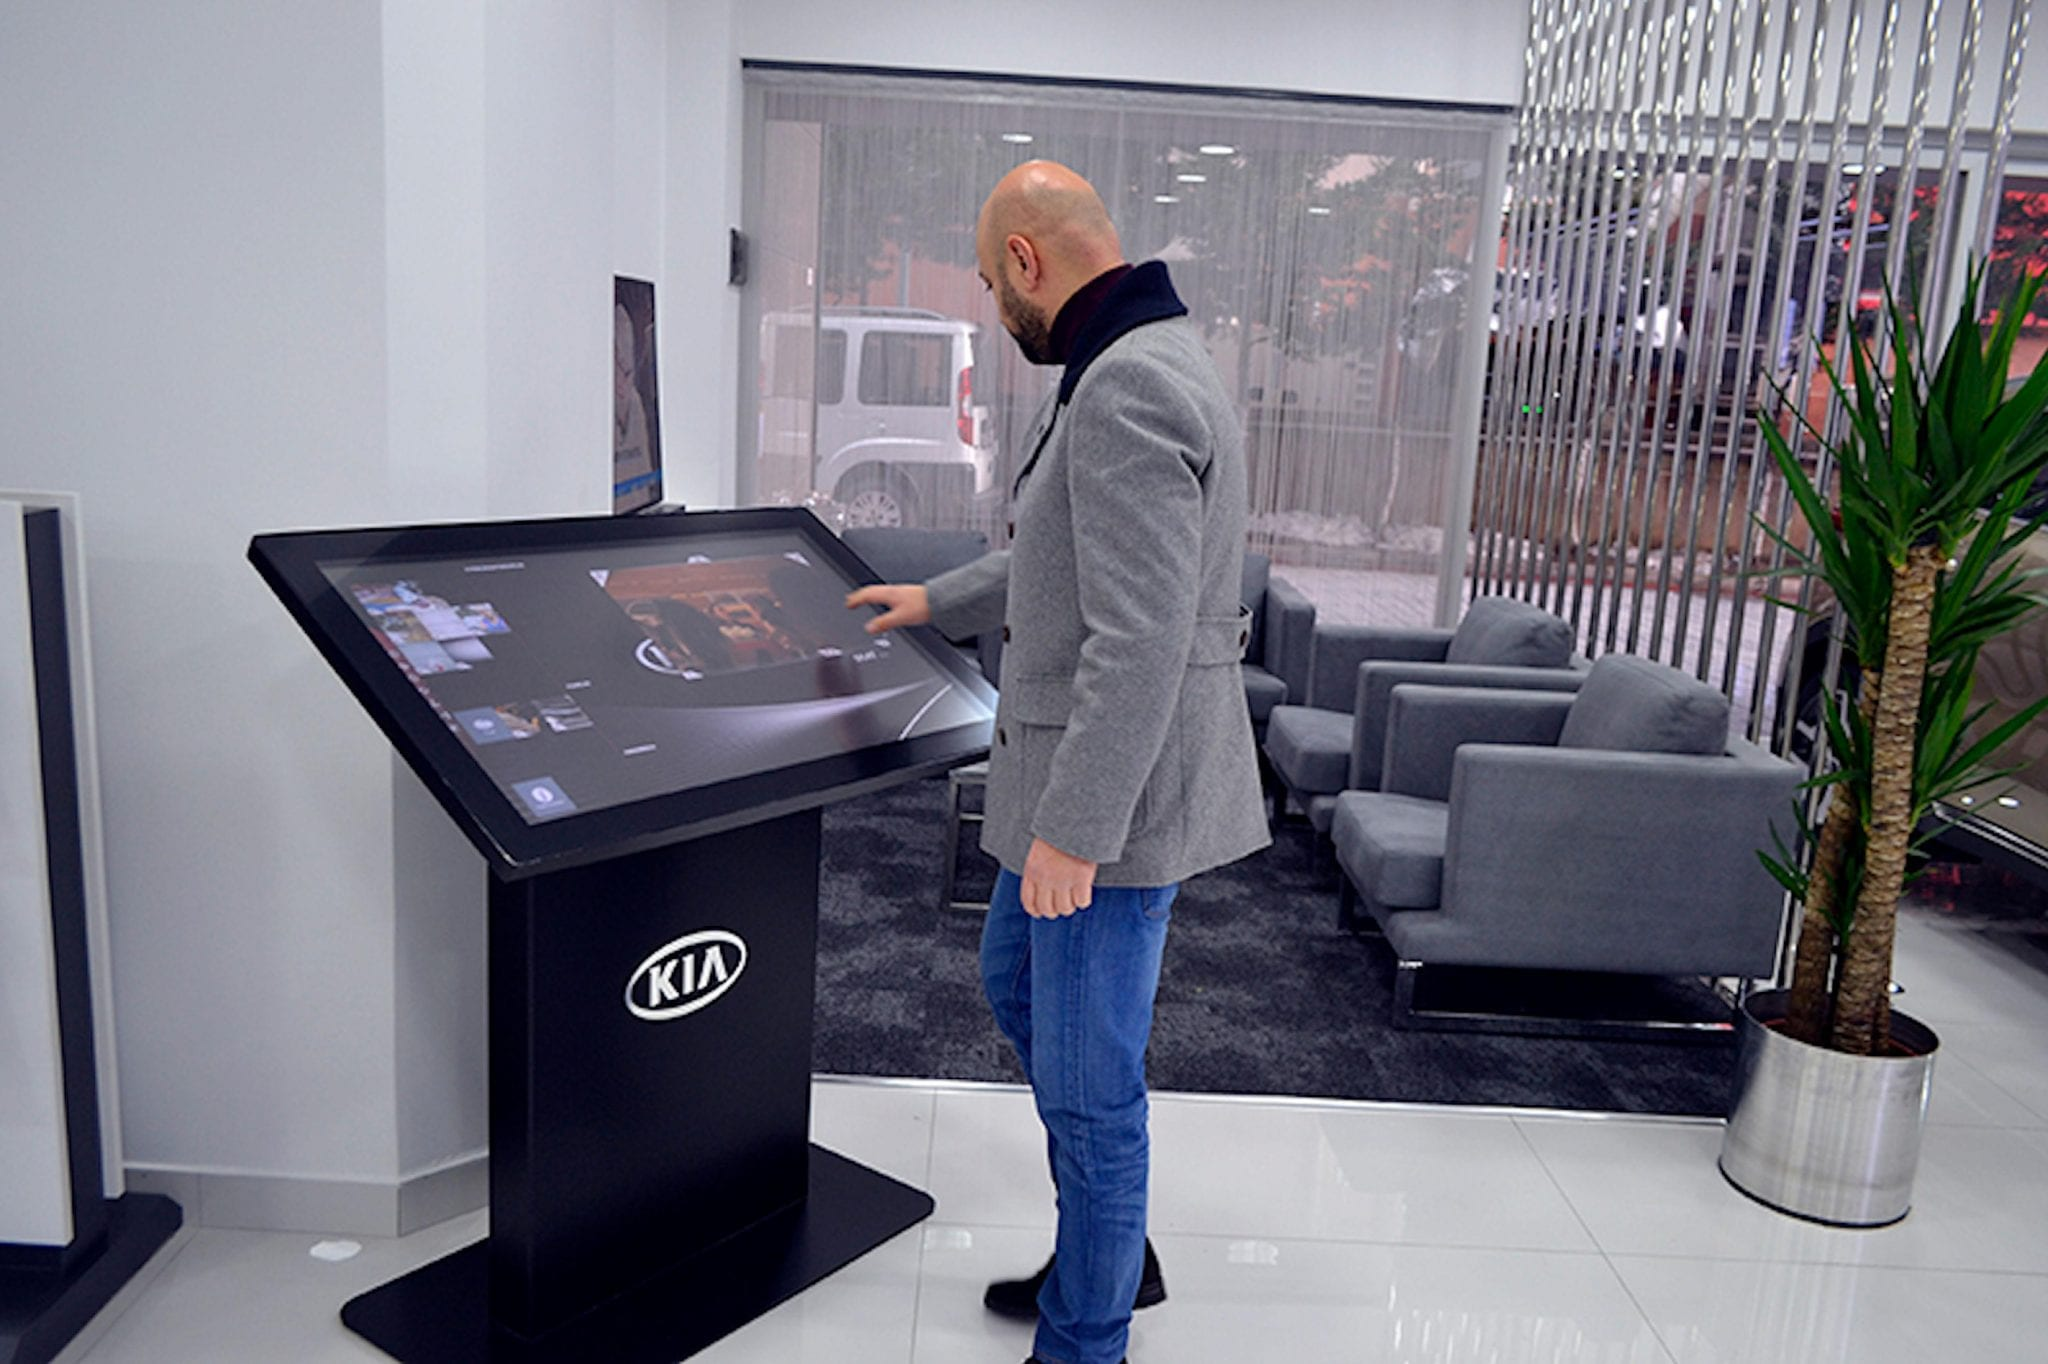 Zytronic Touch technology being used at Kia